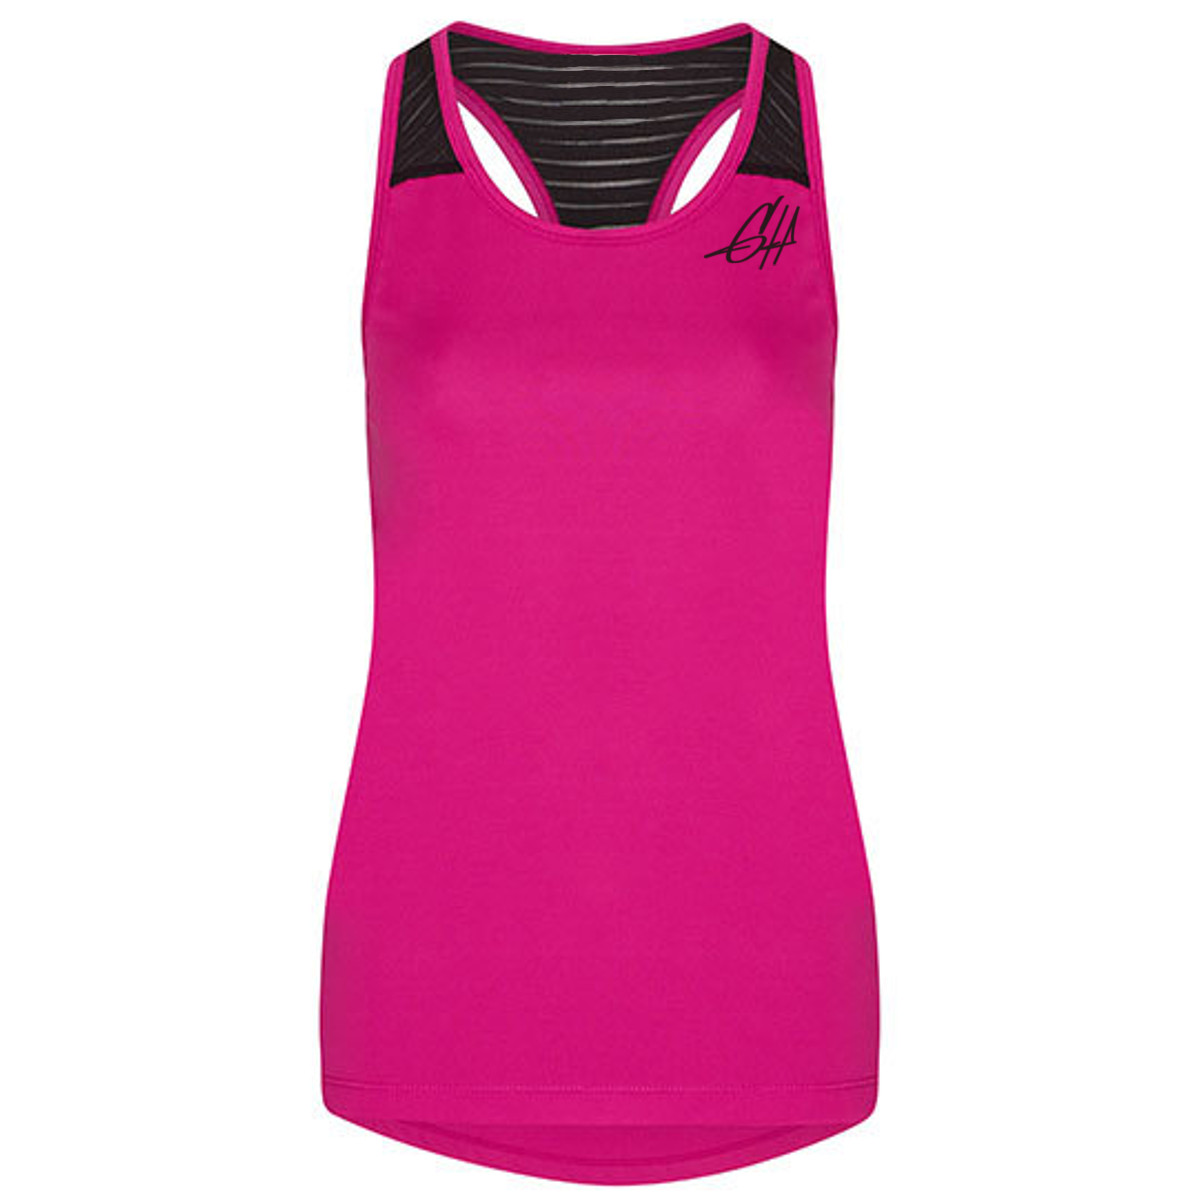 0262a1e240c7 Damen Sportkollektion   Go Heavy Apparel